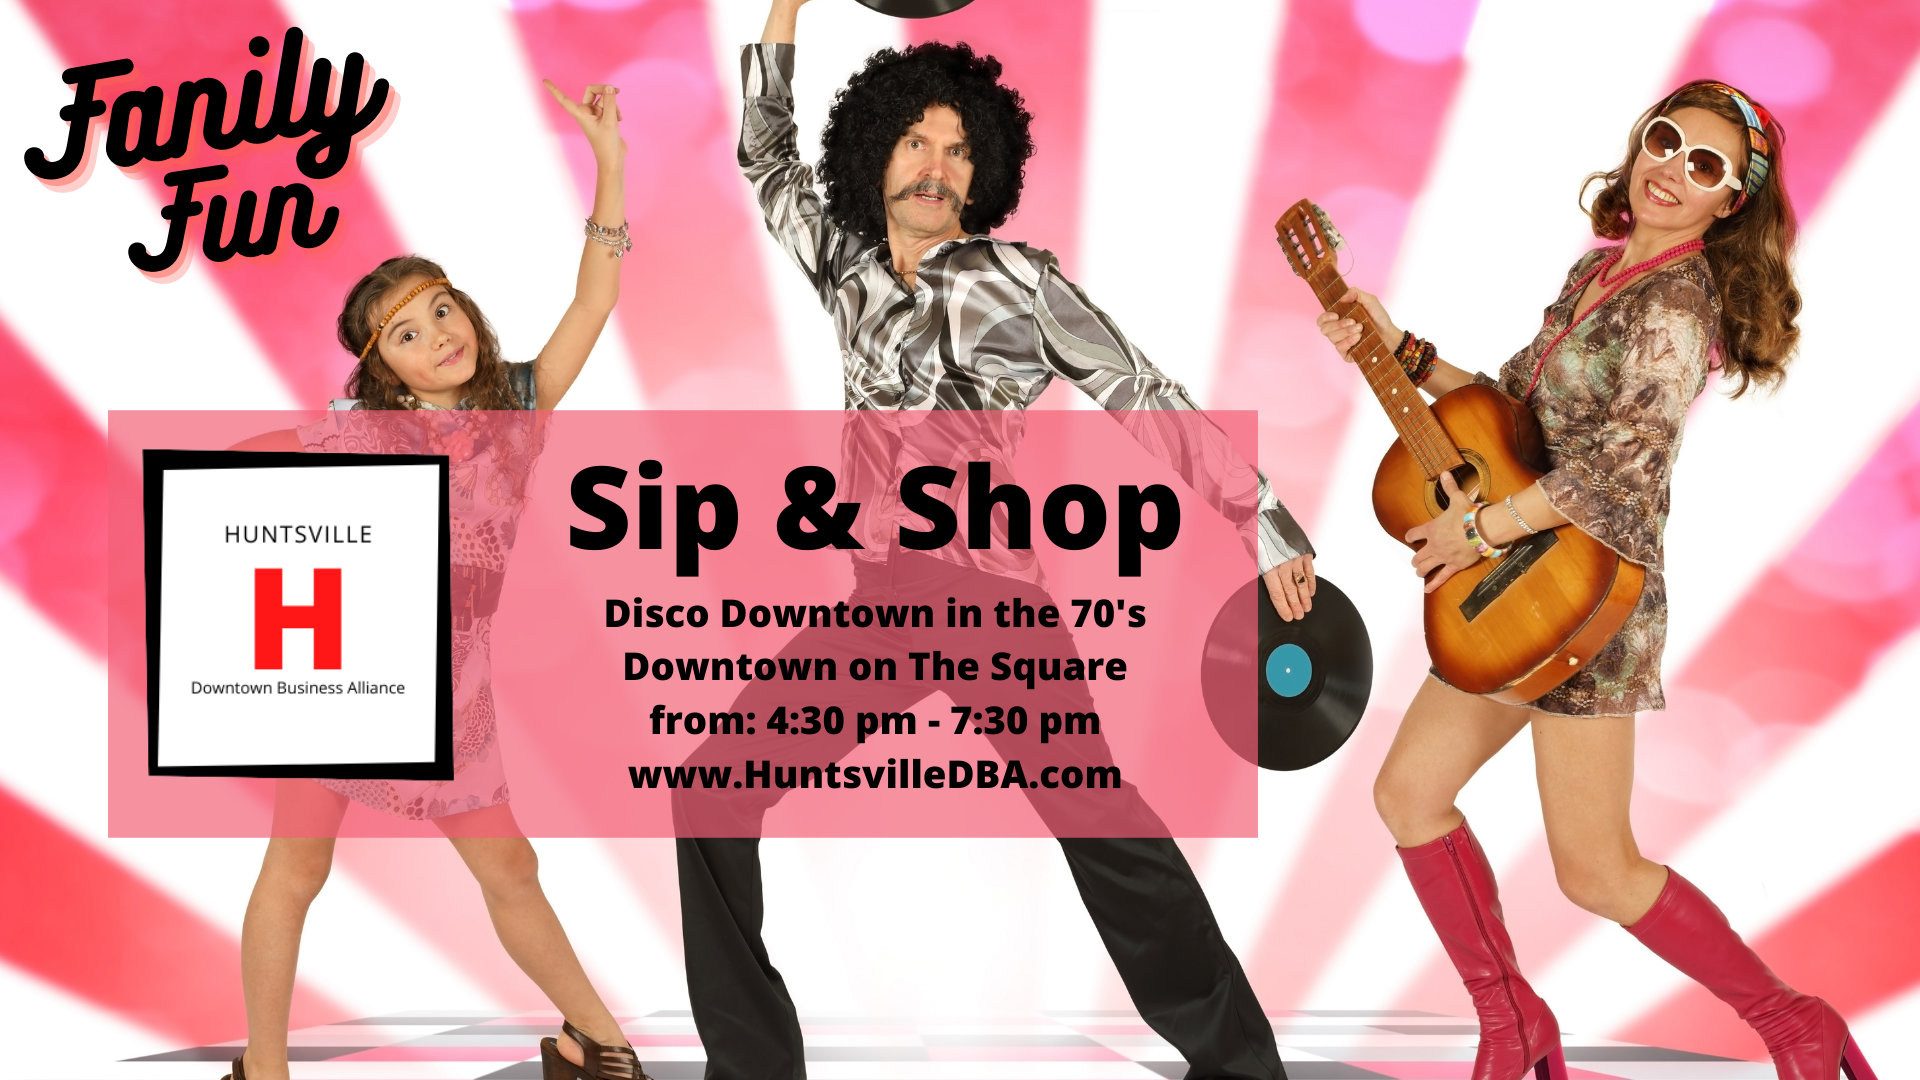 Sip & Shop Disco Downtown in the 70's